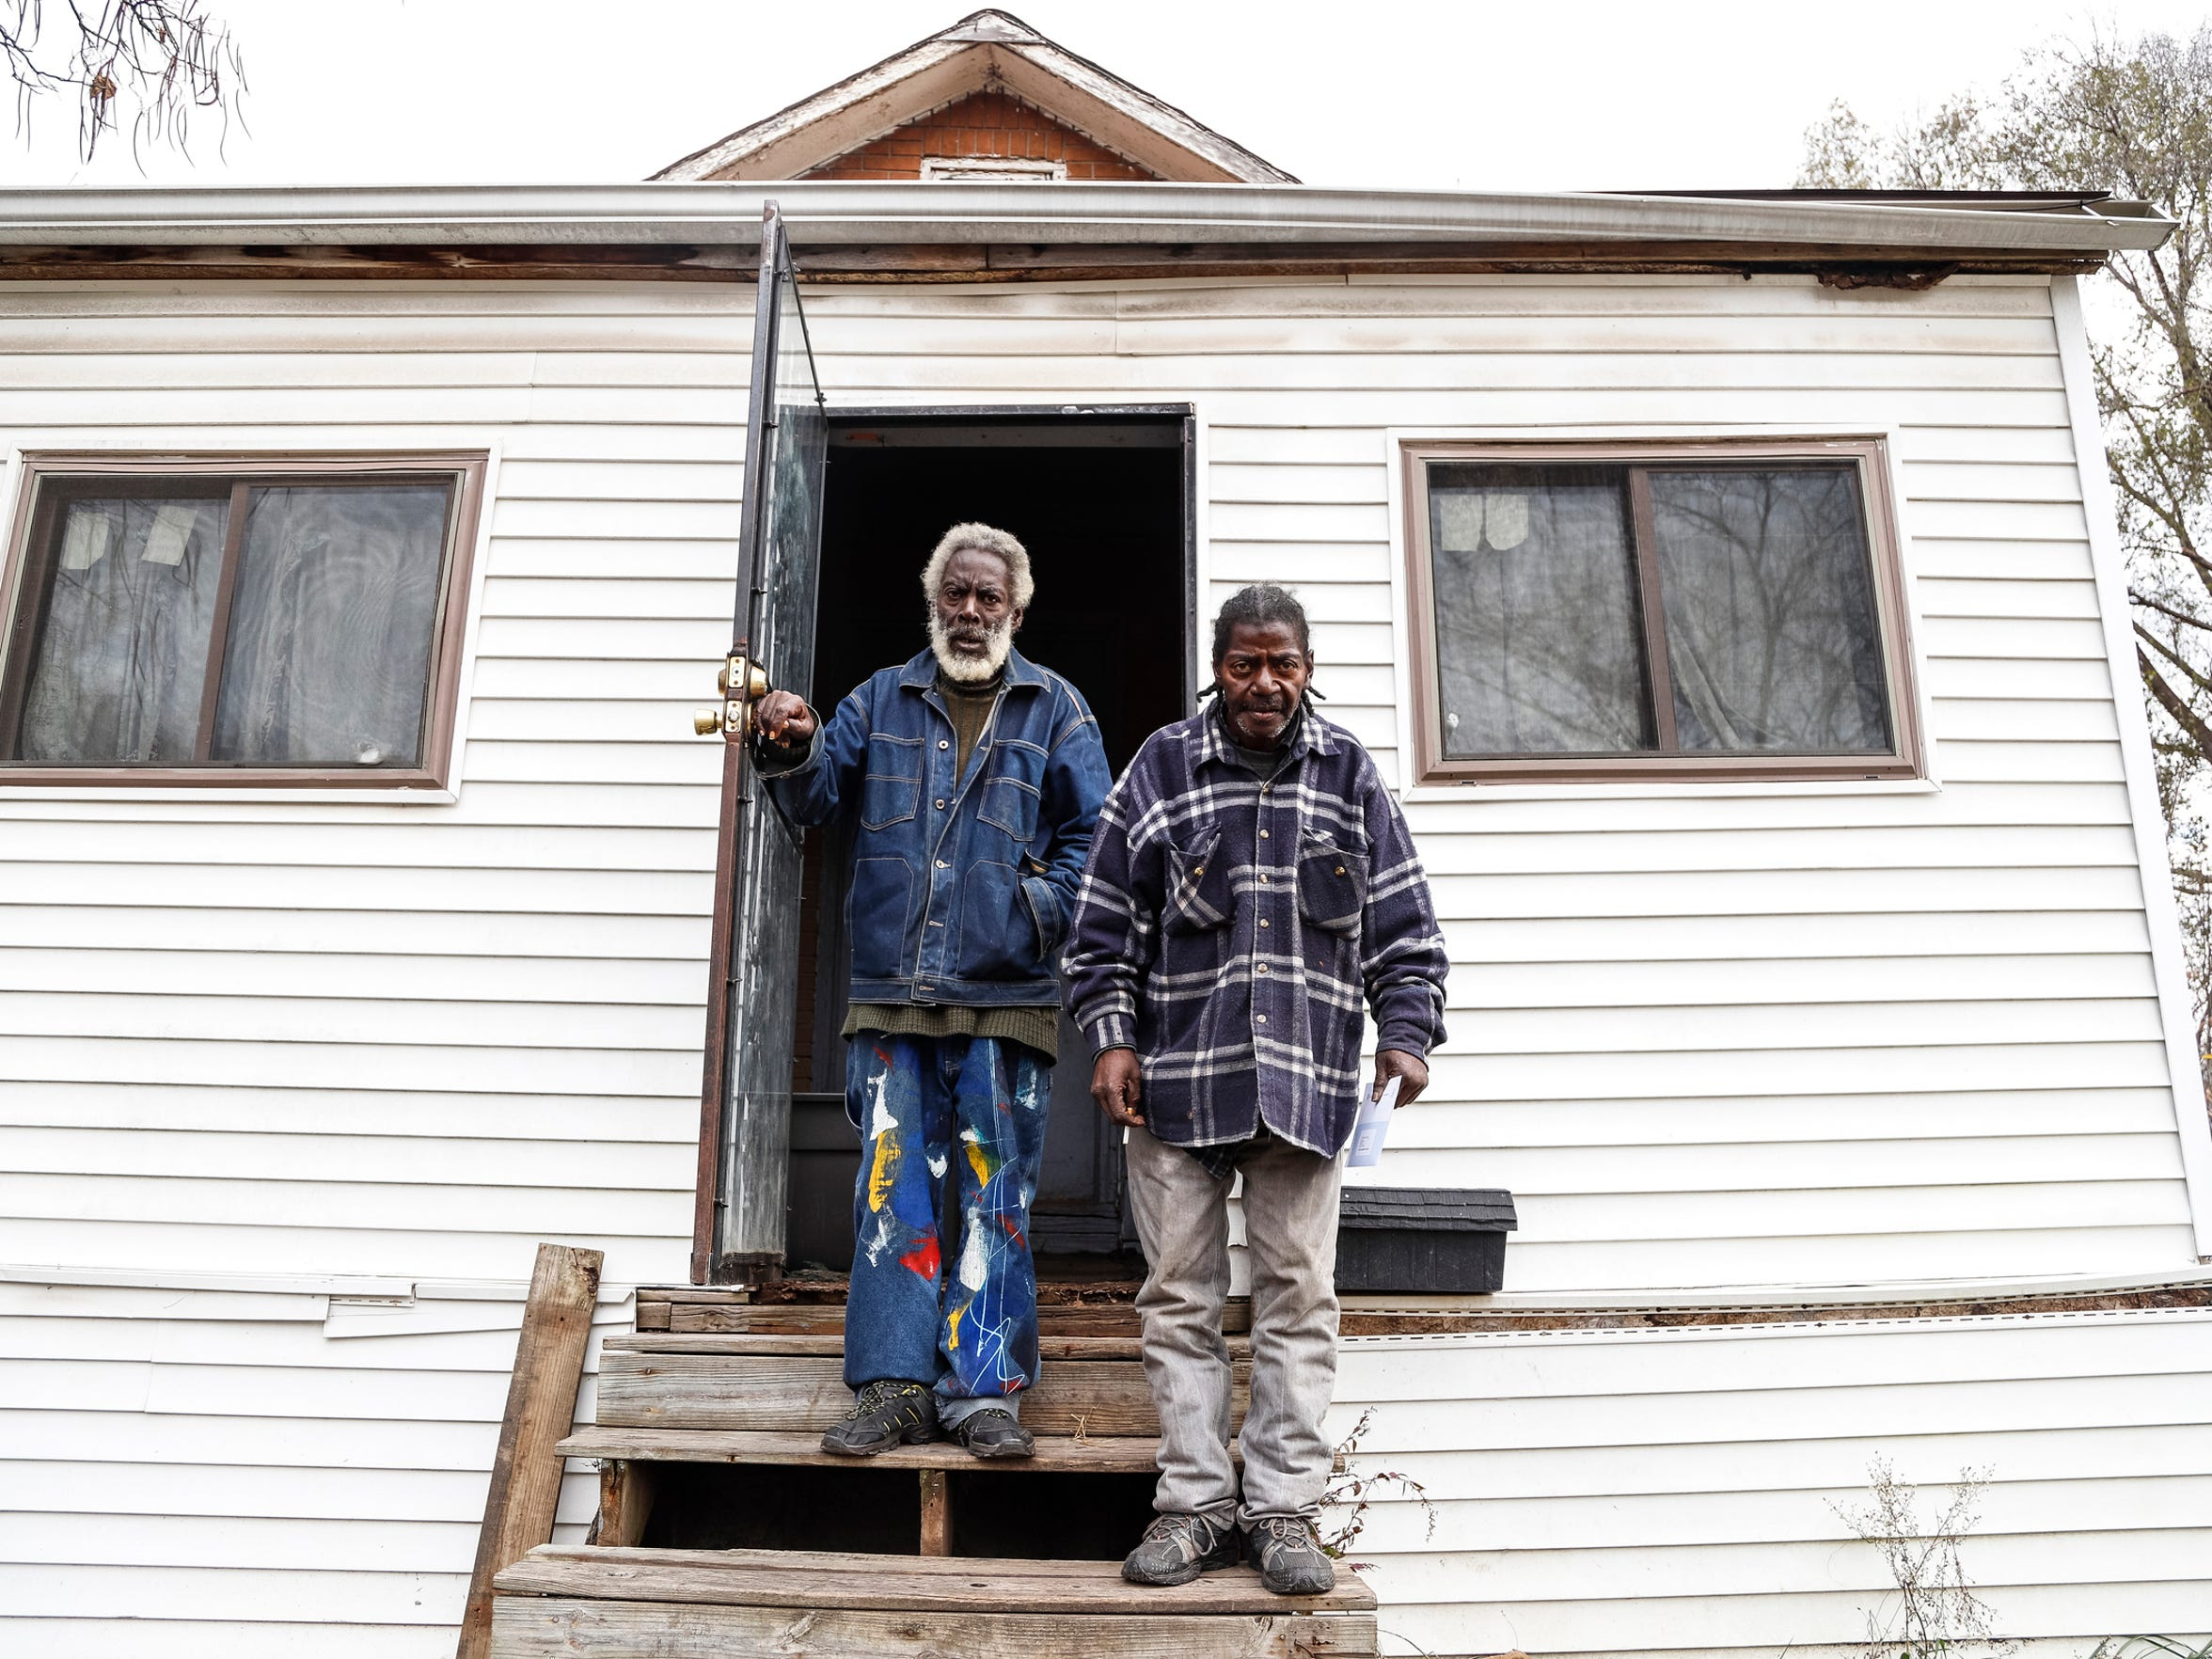 Squatters, dead bodies, drugs found in Detroit land bank